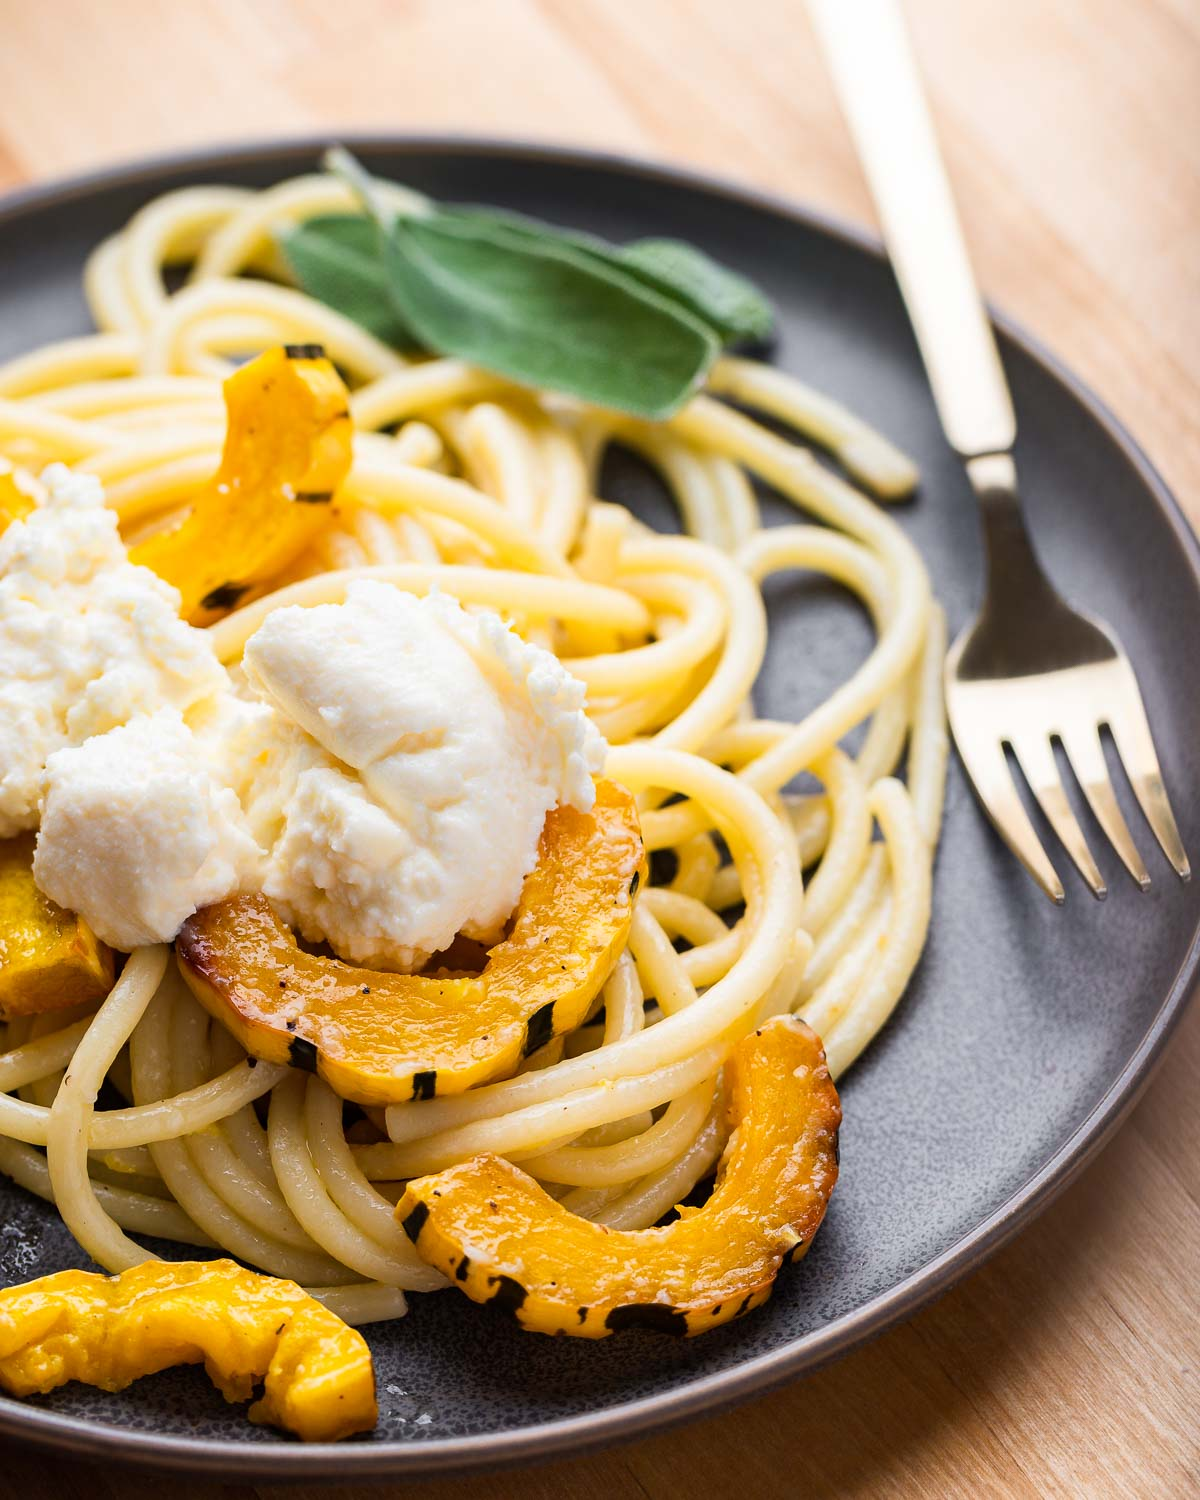 Grey plate with delicata squash bucatini and dollop of ricotta on top.